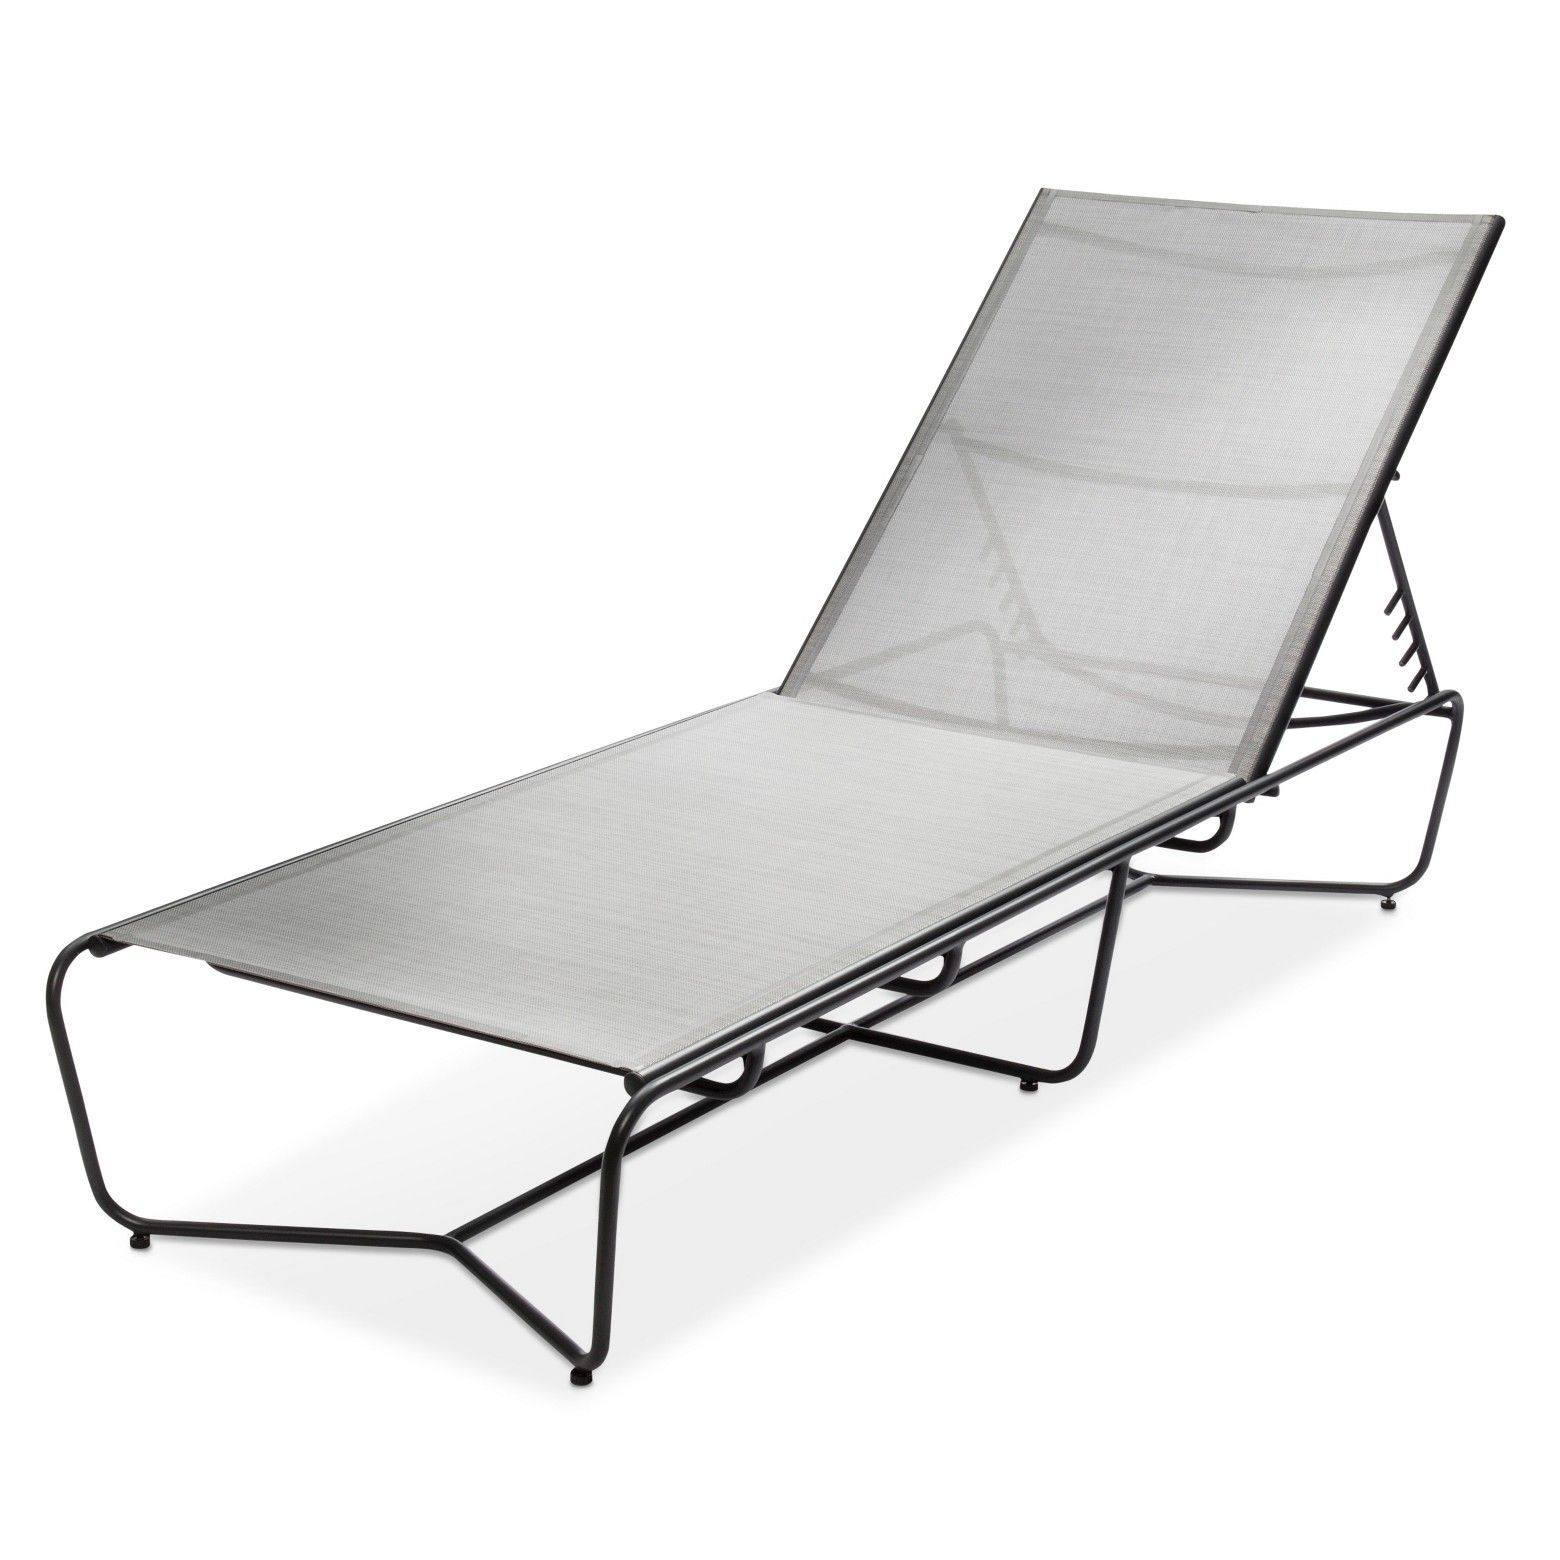 dwell modern lounge furniture. Outdoor Chaise Lounge Gray - Modern By Dwell Magazine Furniture V